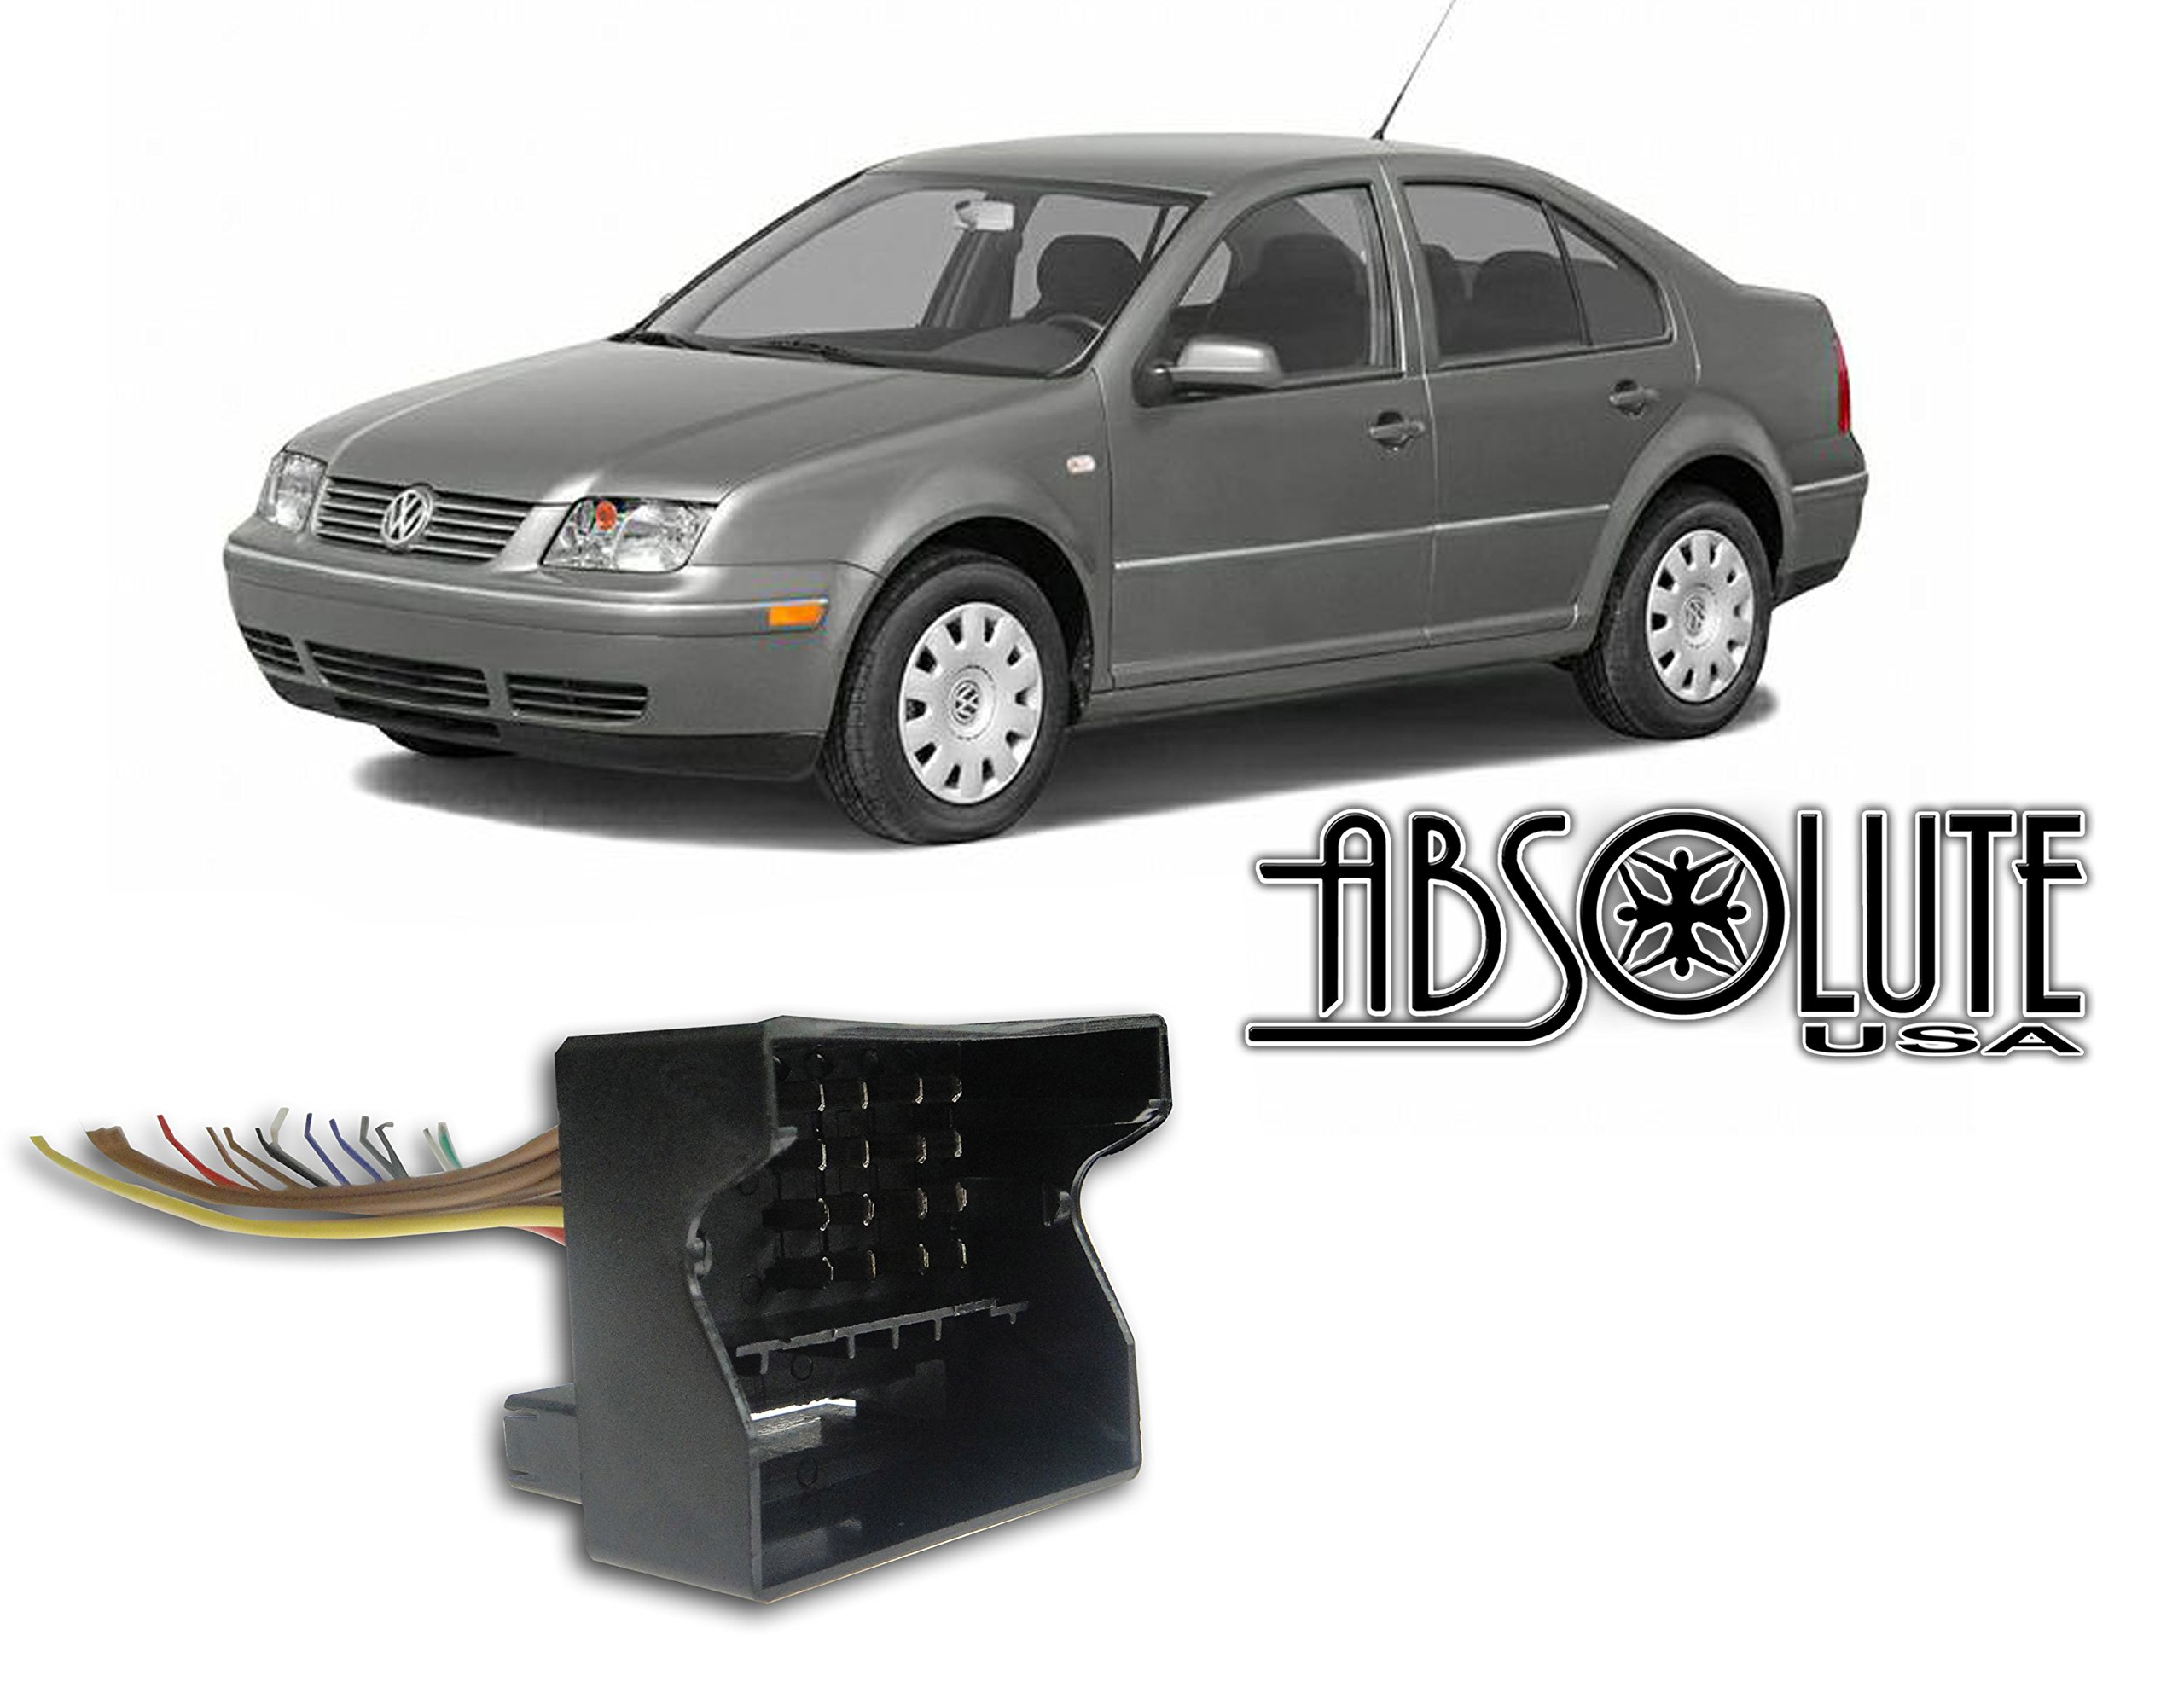 Stereo Wire Harness VW Jetta 03 04 05 2004 2005 Aftermarket Radio / Stereo Installation Wire Harness